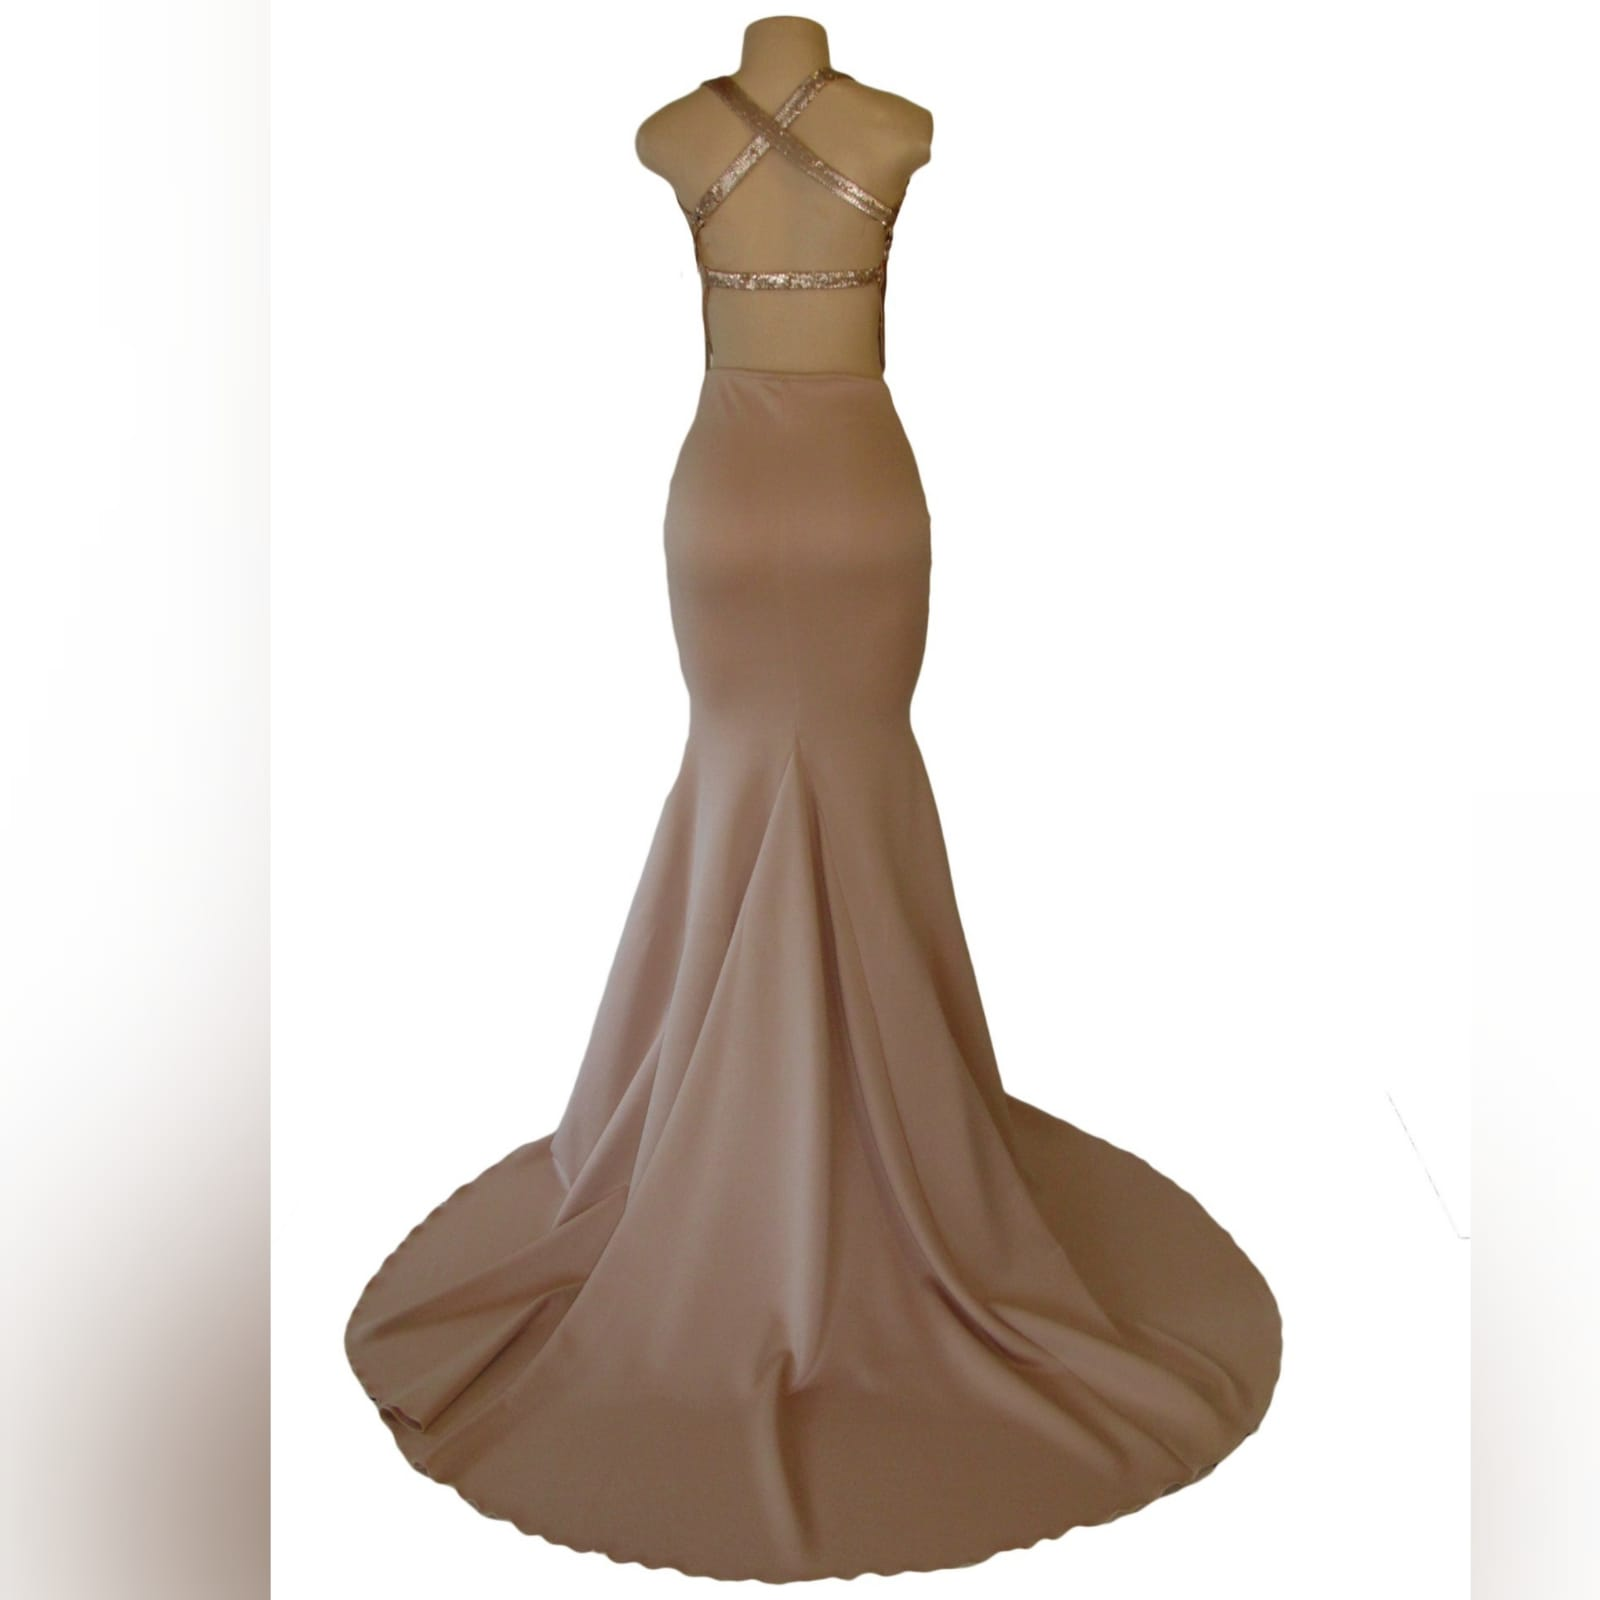 Nude and gold soft mermaid prom dress 6 nude and gold soft mermaid prom dress. Bodice in sequins with a plunging neckline and a naked back detailed with straps. Bottom with a long wide train.